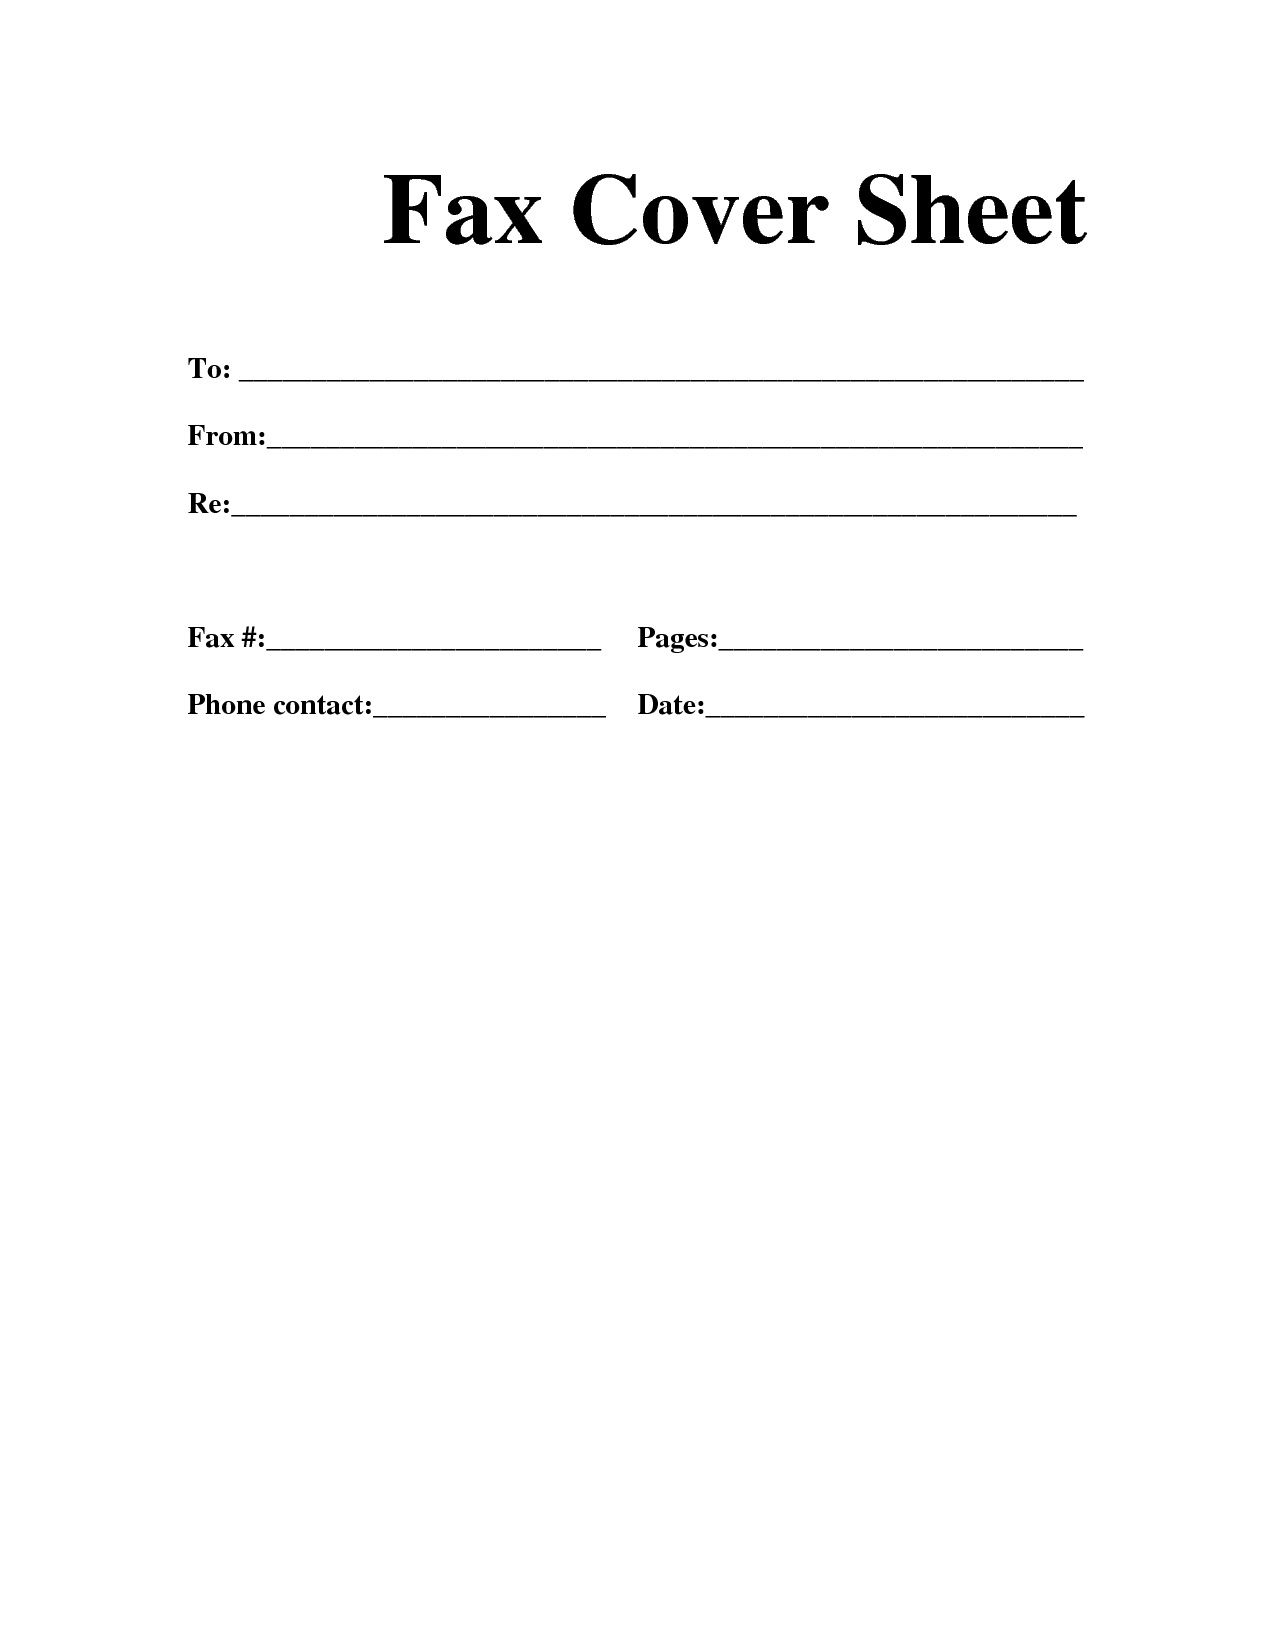 How To Write A Fax Cover Letter For Resume | Resume CV Cover Letter